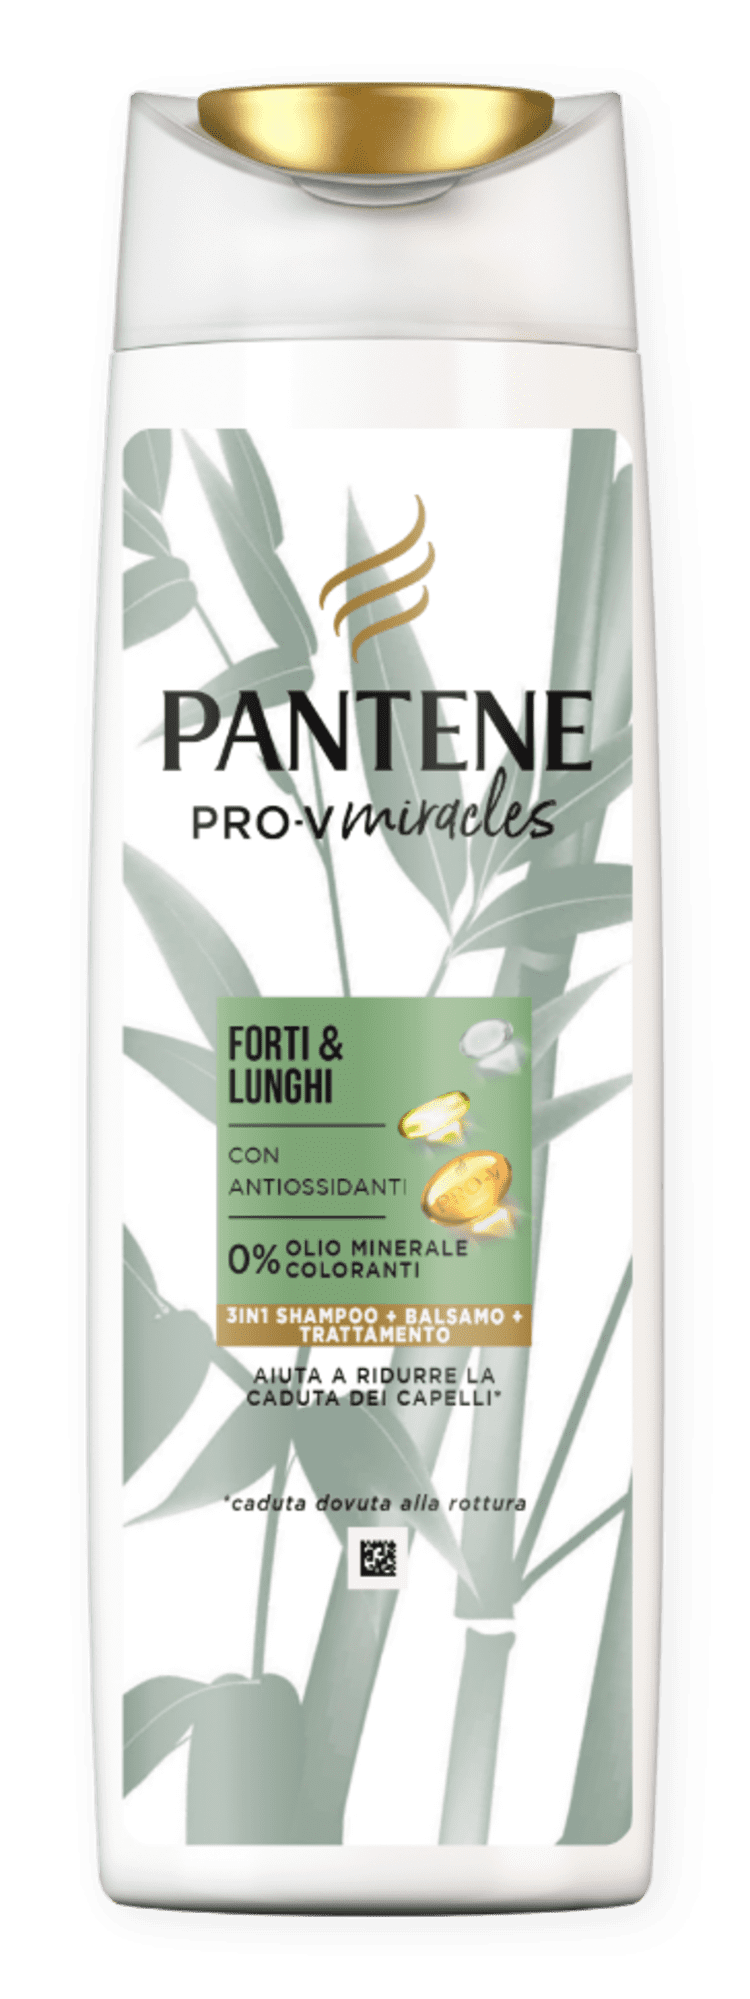 Pantene Pro-V Miracles Shampoo Forti & Lunghi 3in1